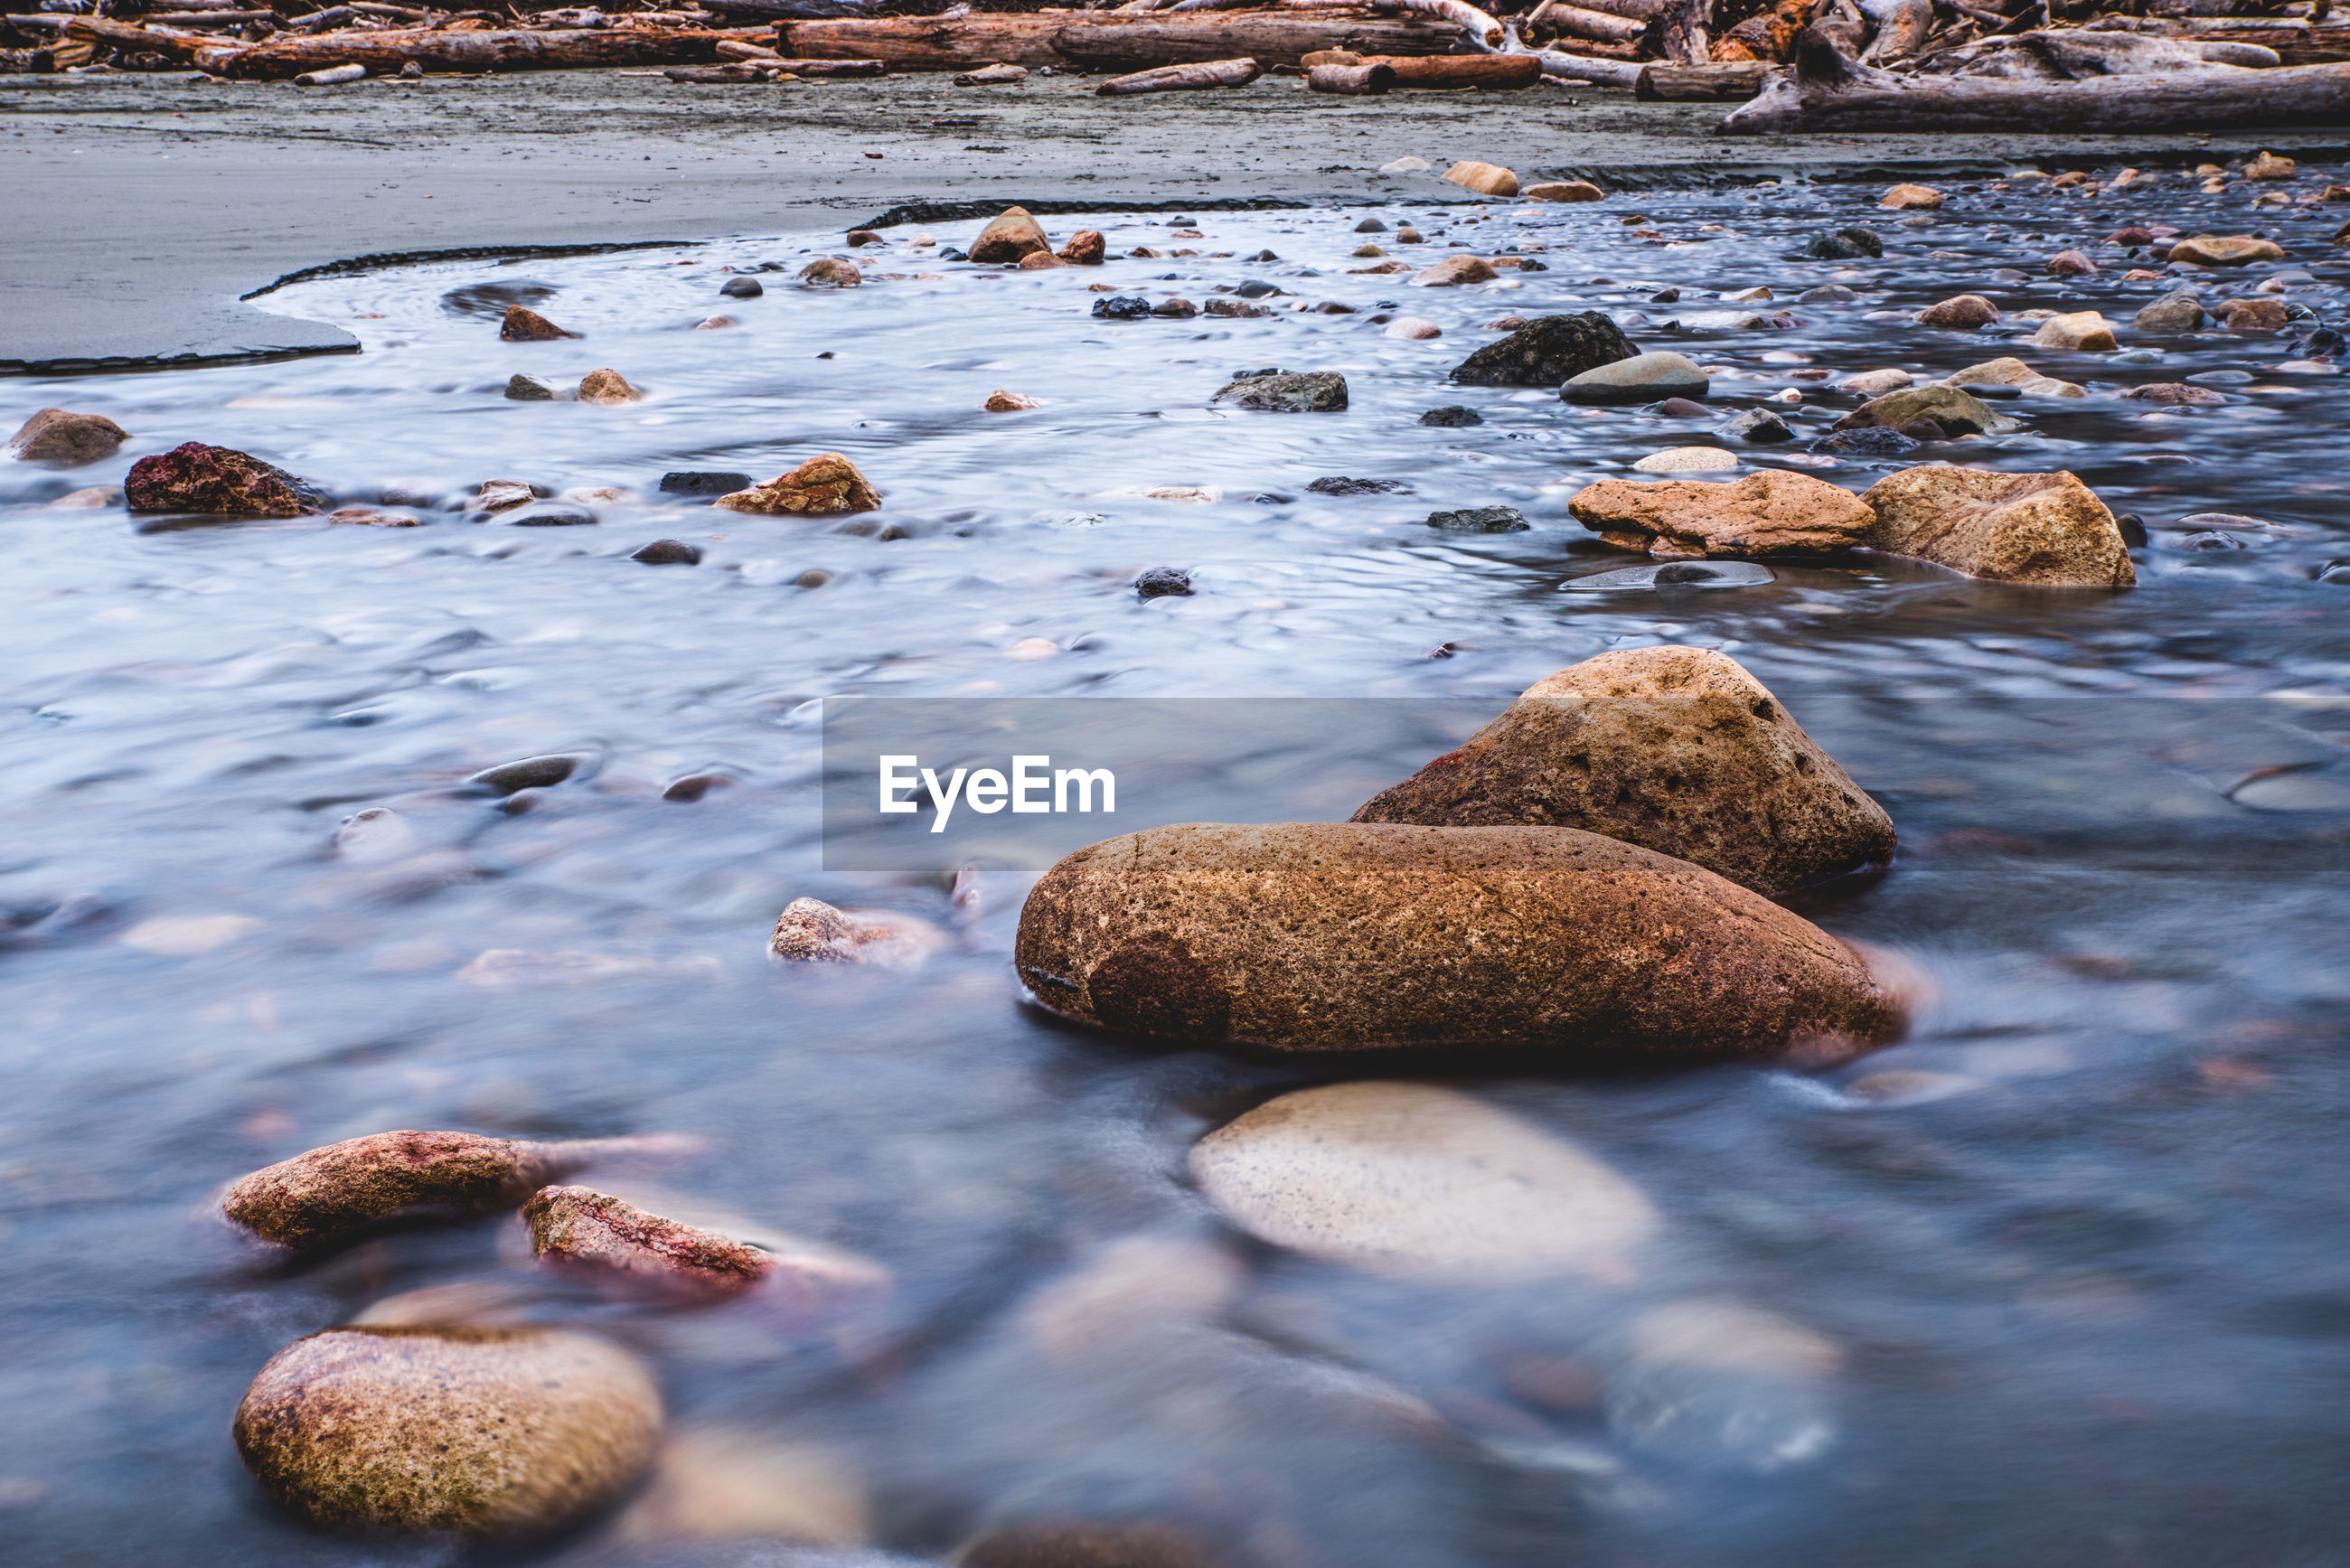 Close-up of pebbles on shore in water